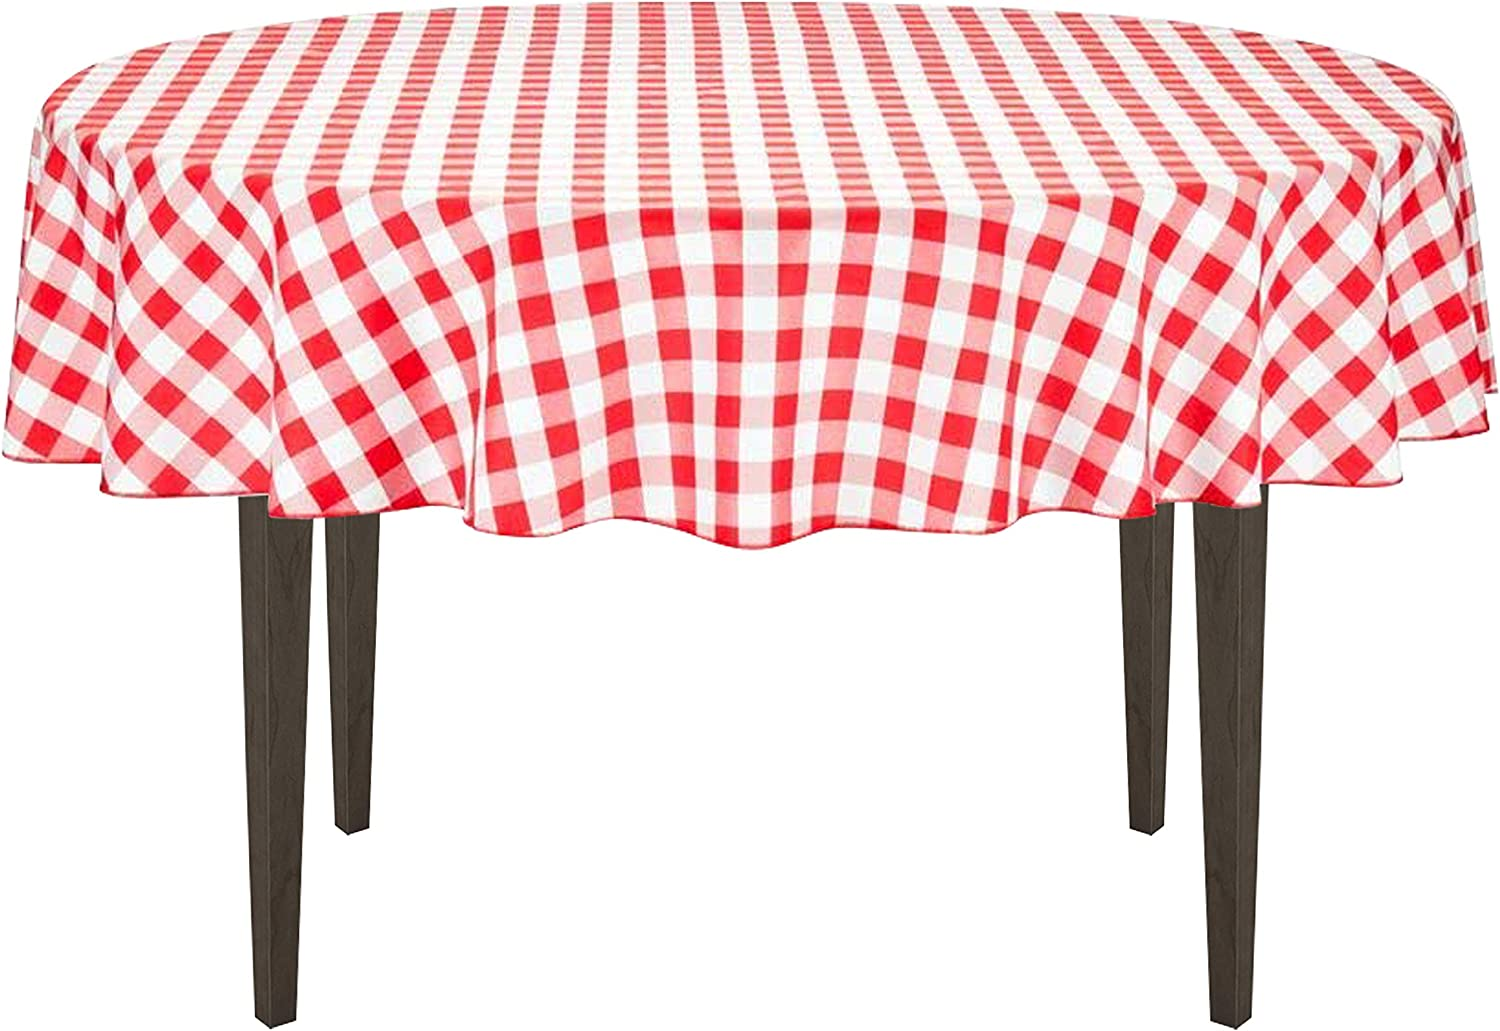 """Rans Red Gingham Check Tablecloth Cloth 150x230cm 91x60/"""" Too Quality Cotton"""